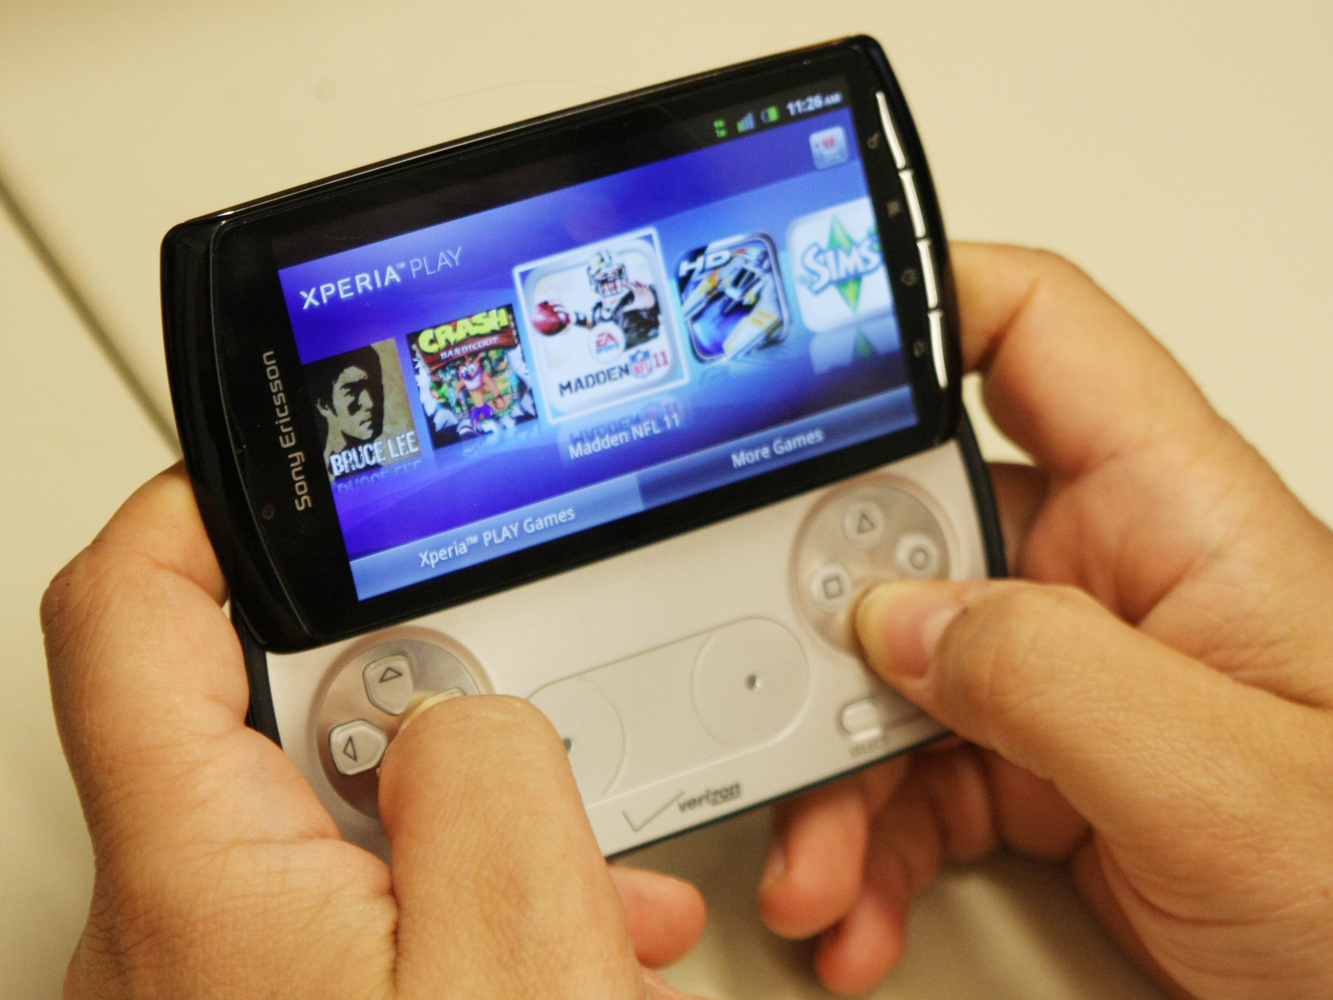 The Xperia Play can't hope to compete with the Vita. Why should it?